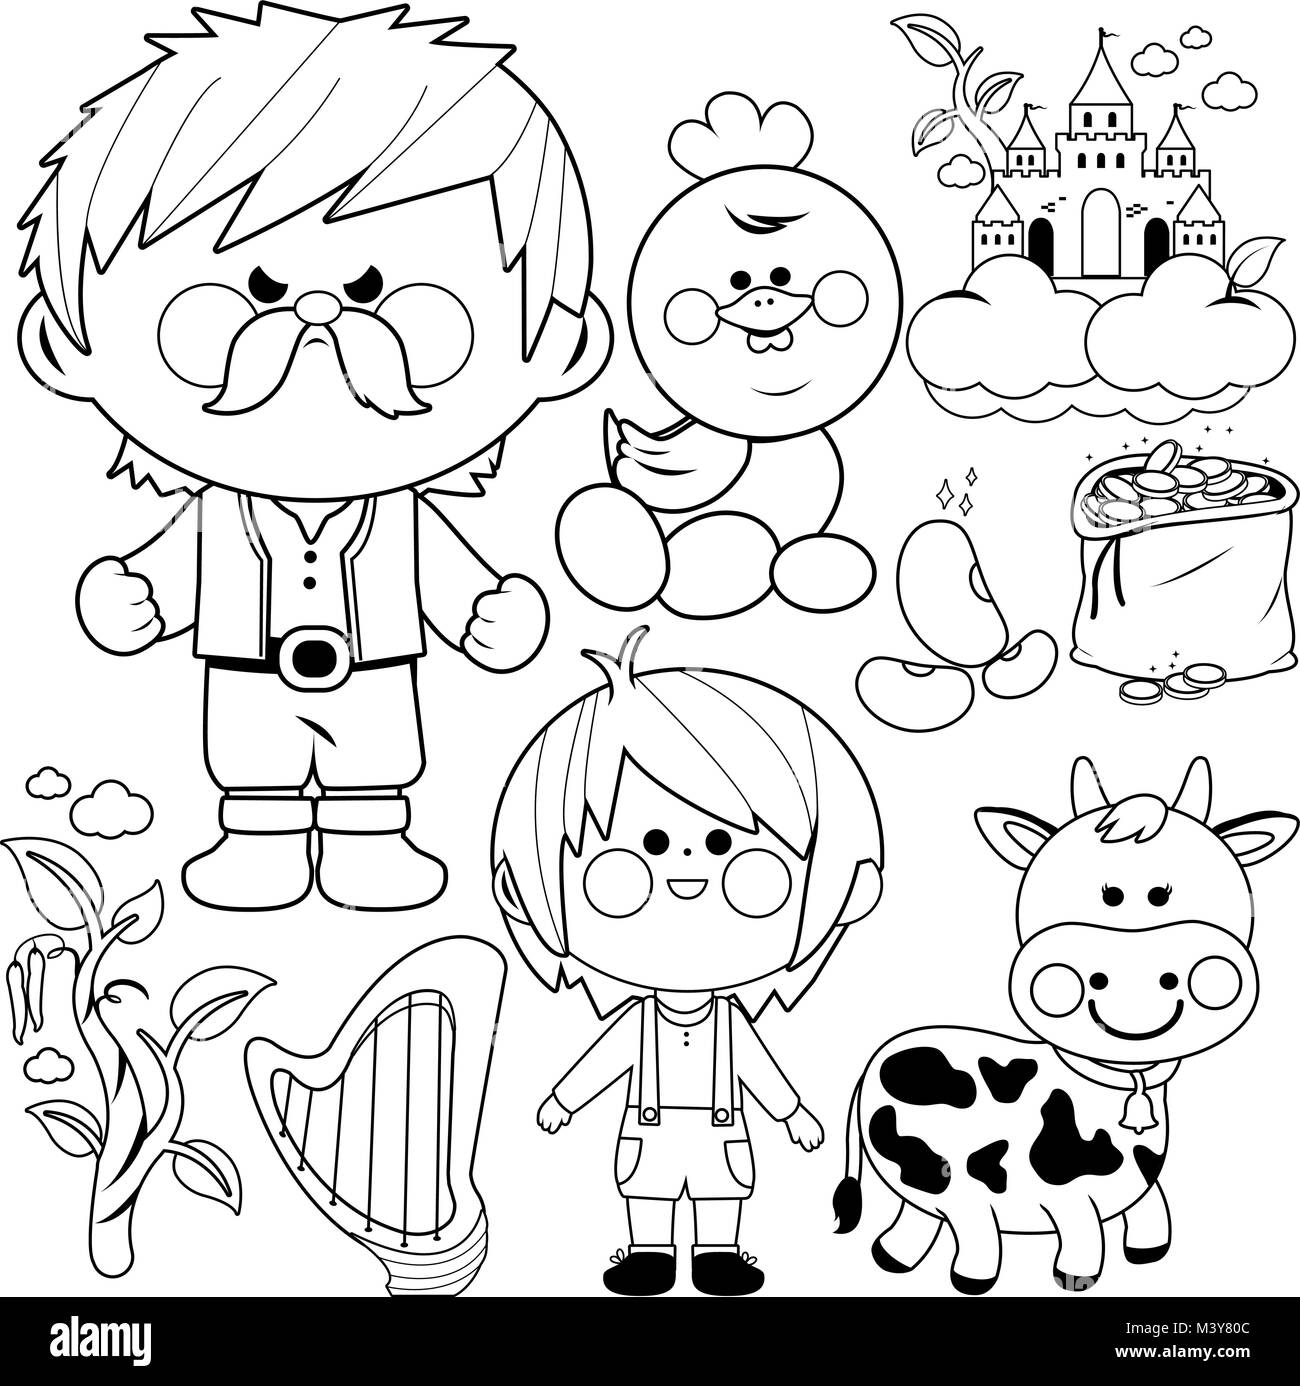 Jack and the magic beanstalk fairy tale vector collection. Black and white coloring book page Stock Vector